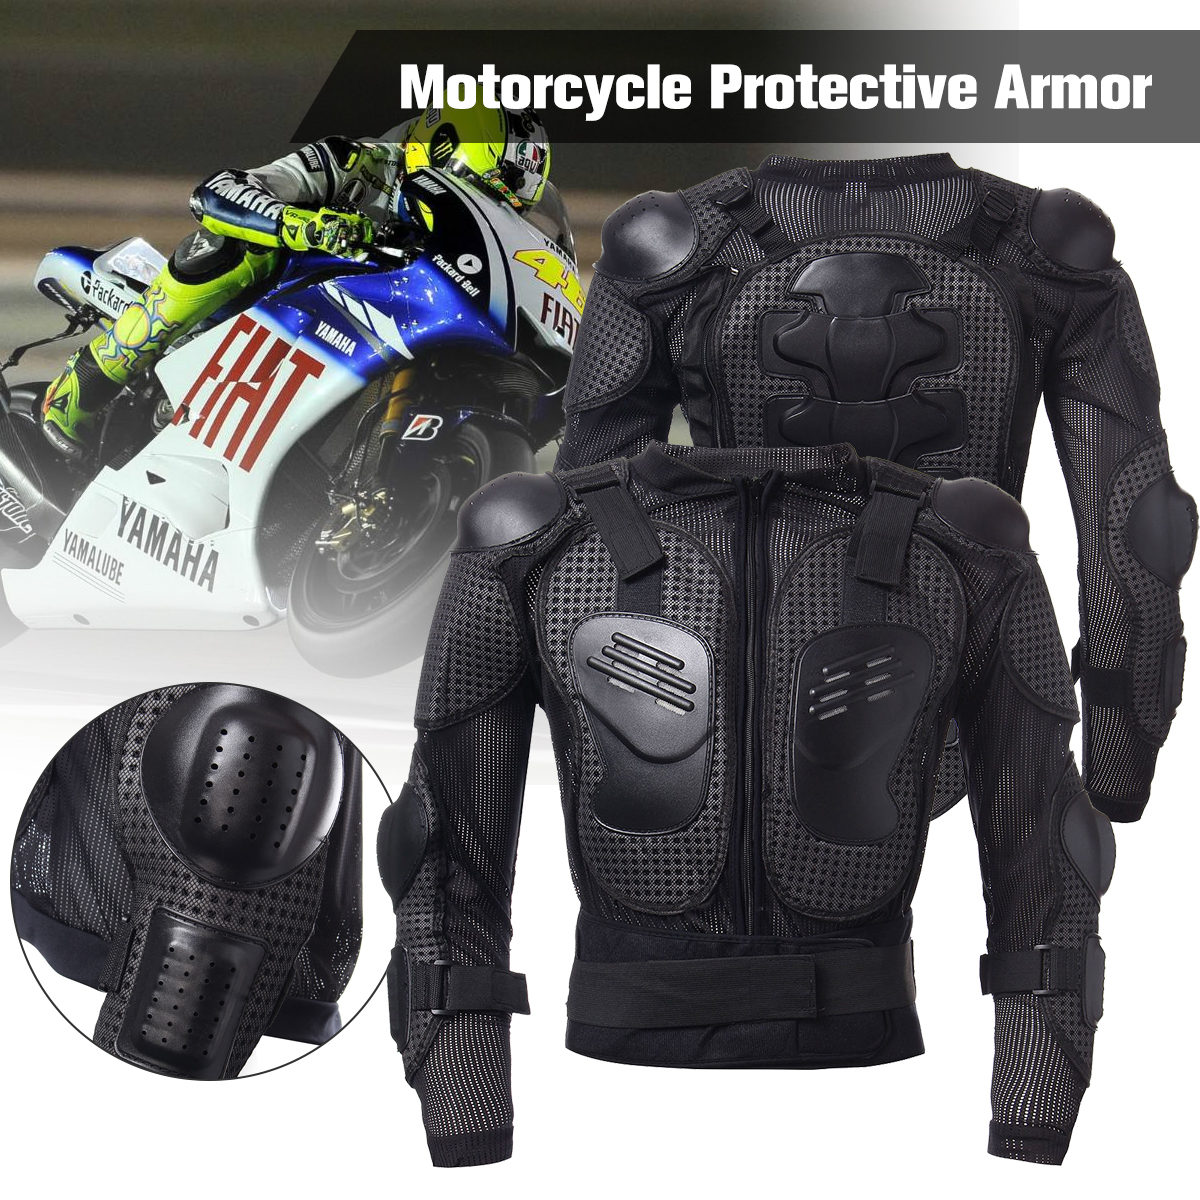 Full Body Armor Motorcycle Jacket Spine Shoulder Chest Protection Riding Gear Protective Riding Guard Jacket